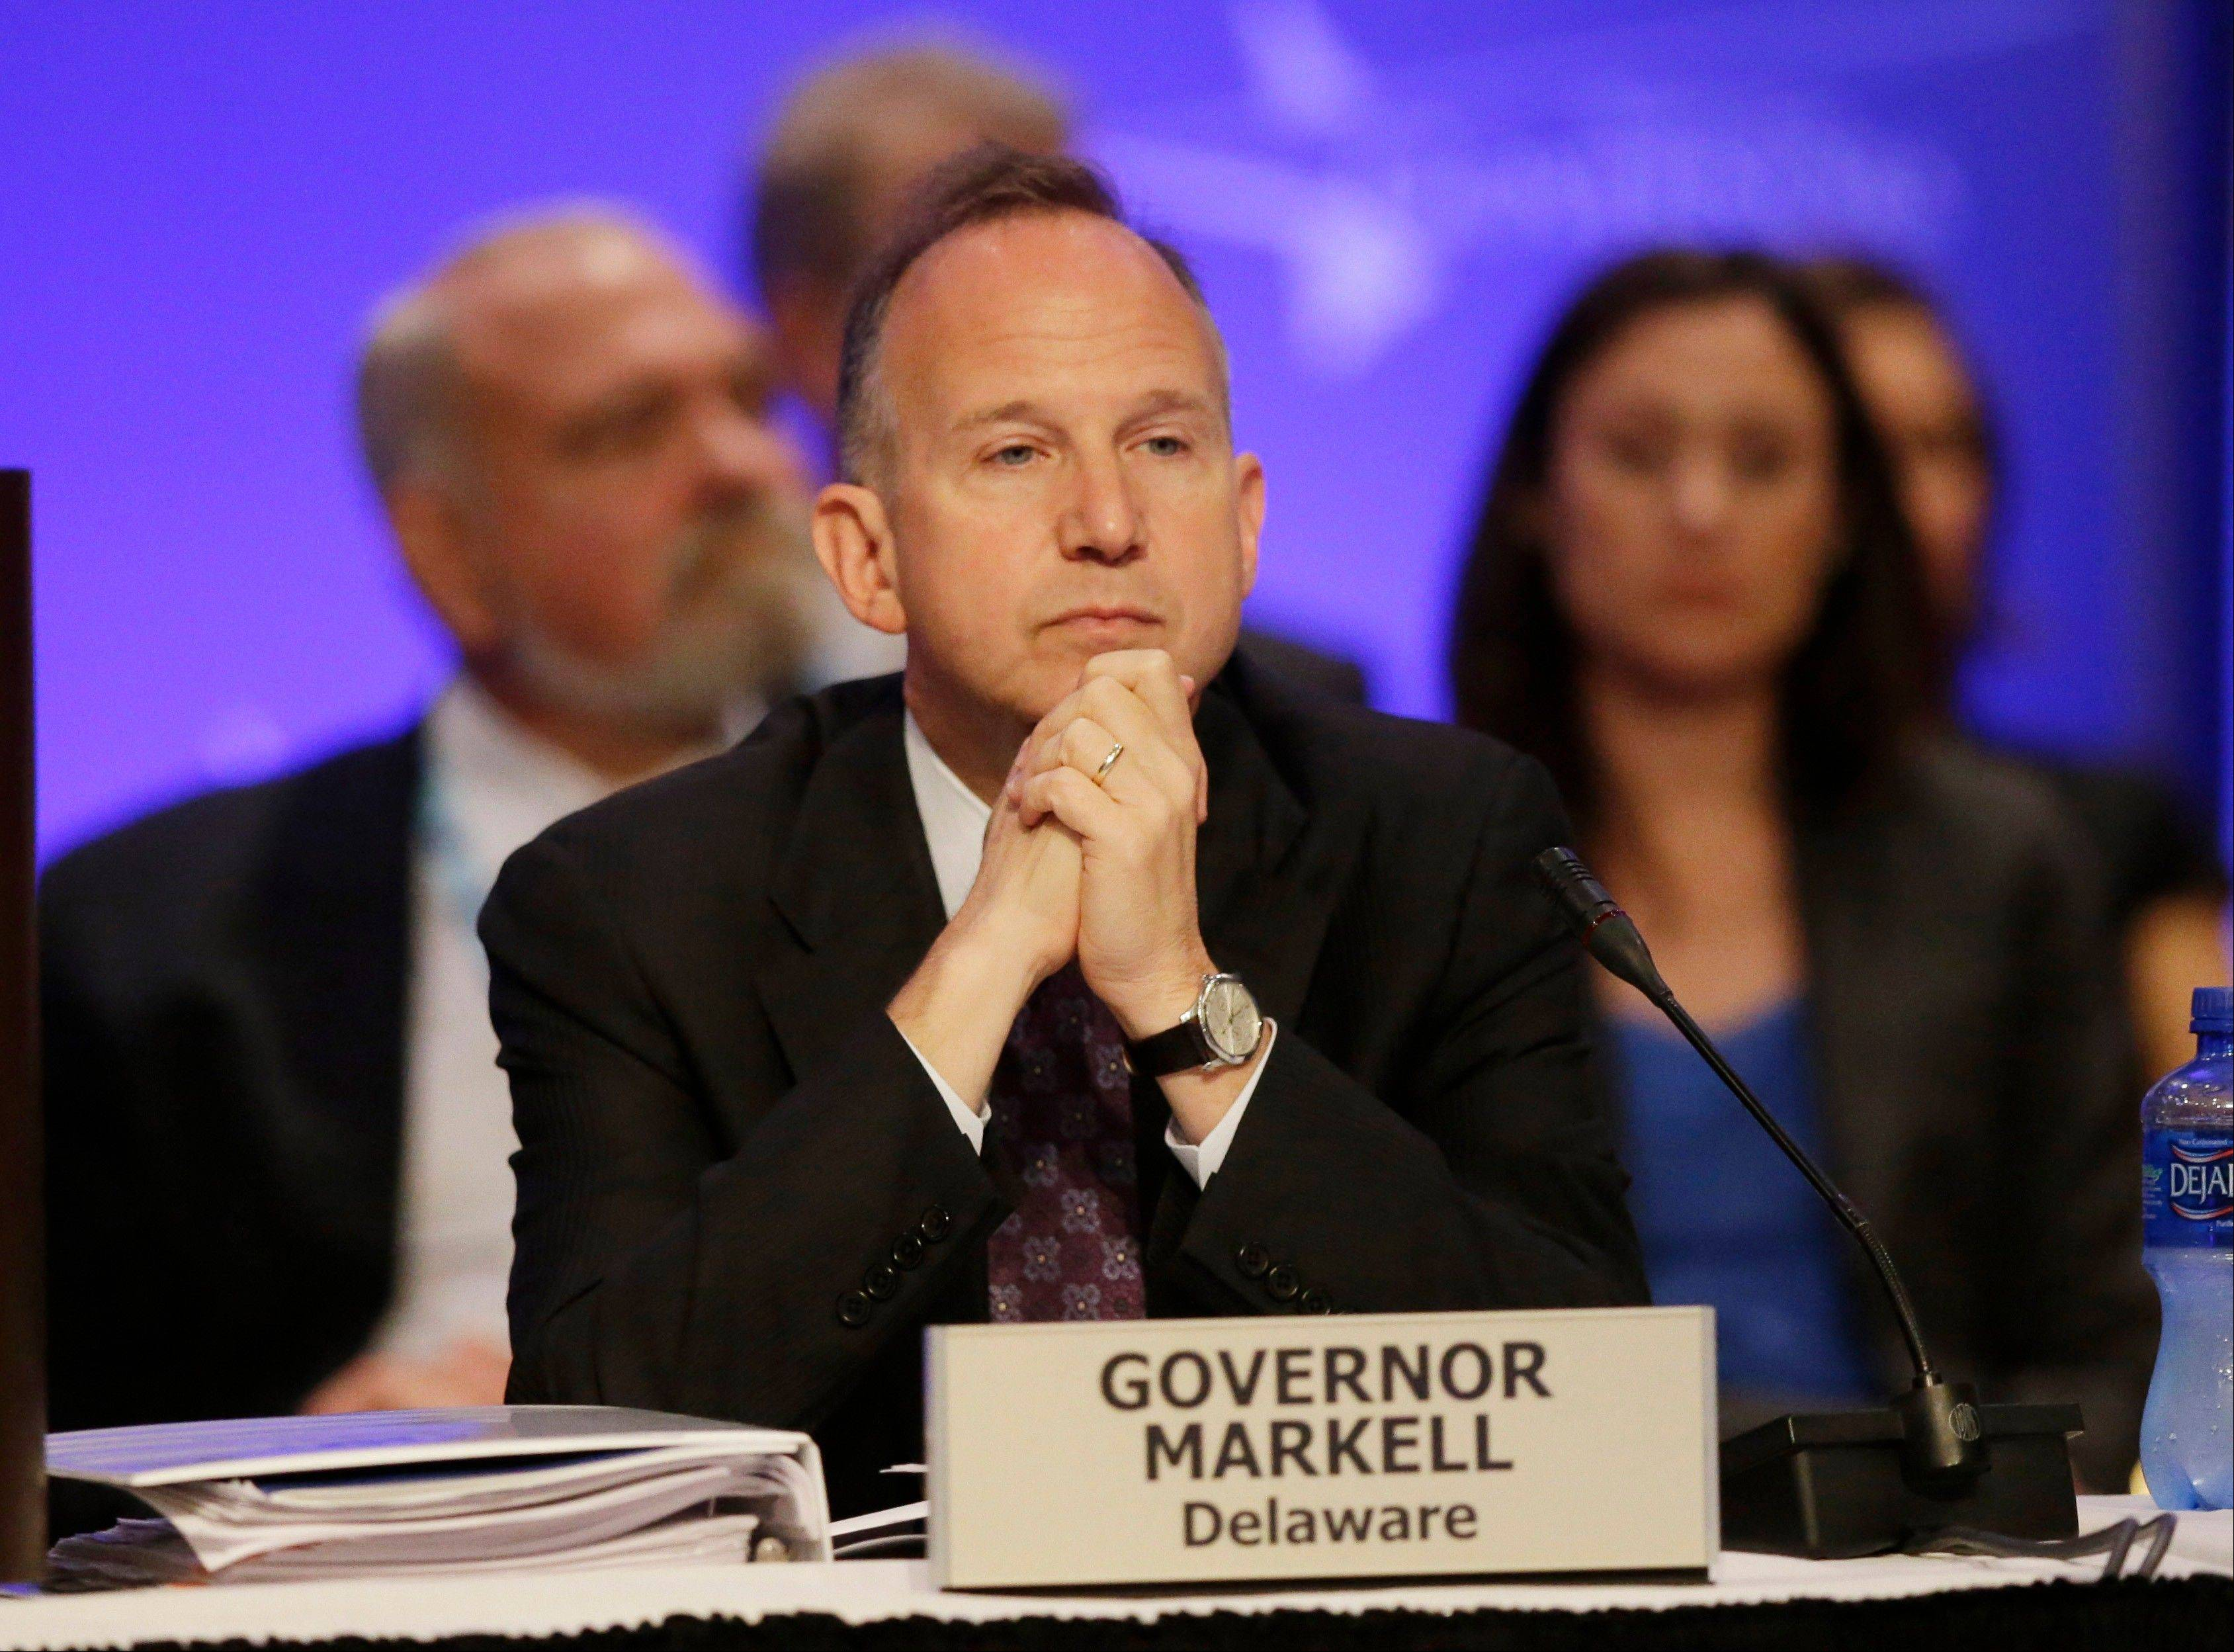 Delaware Gov. Jack Markell listens during a session of the National Governors Association meeting Sunday, Aug. 4, 2013 in Milwaukee. Democratic governors say they are nervous about getting the new federal health care law implemented but add they will be better positioned in next year's elections than many of their Republican counterparts who have resisted the far-reaching and politically polarizing measure.